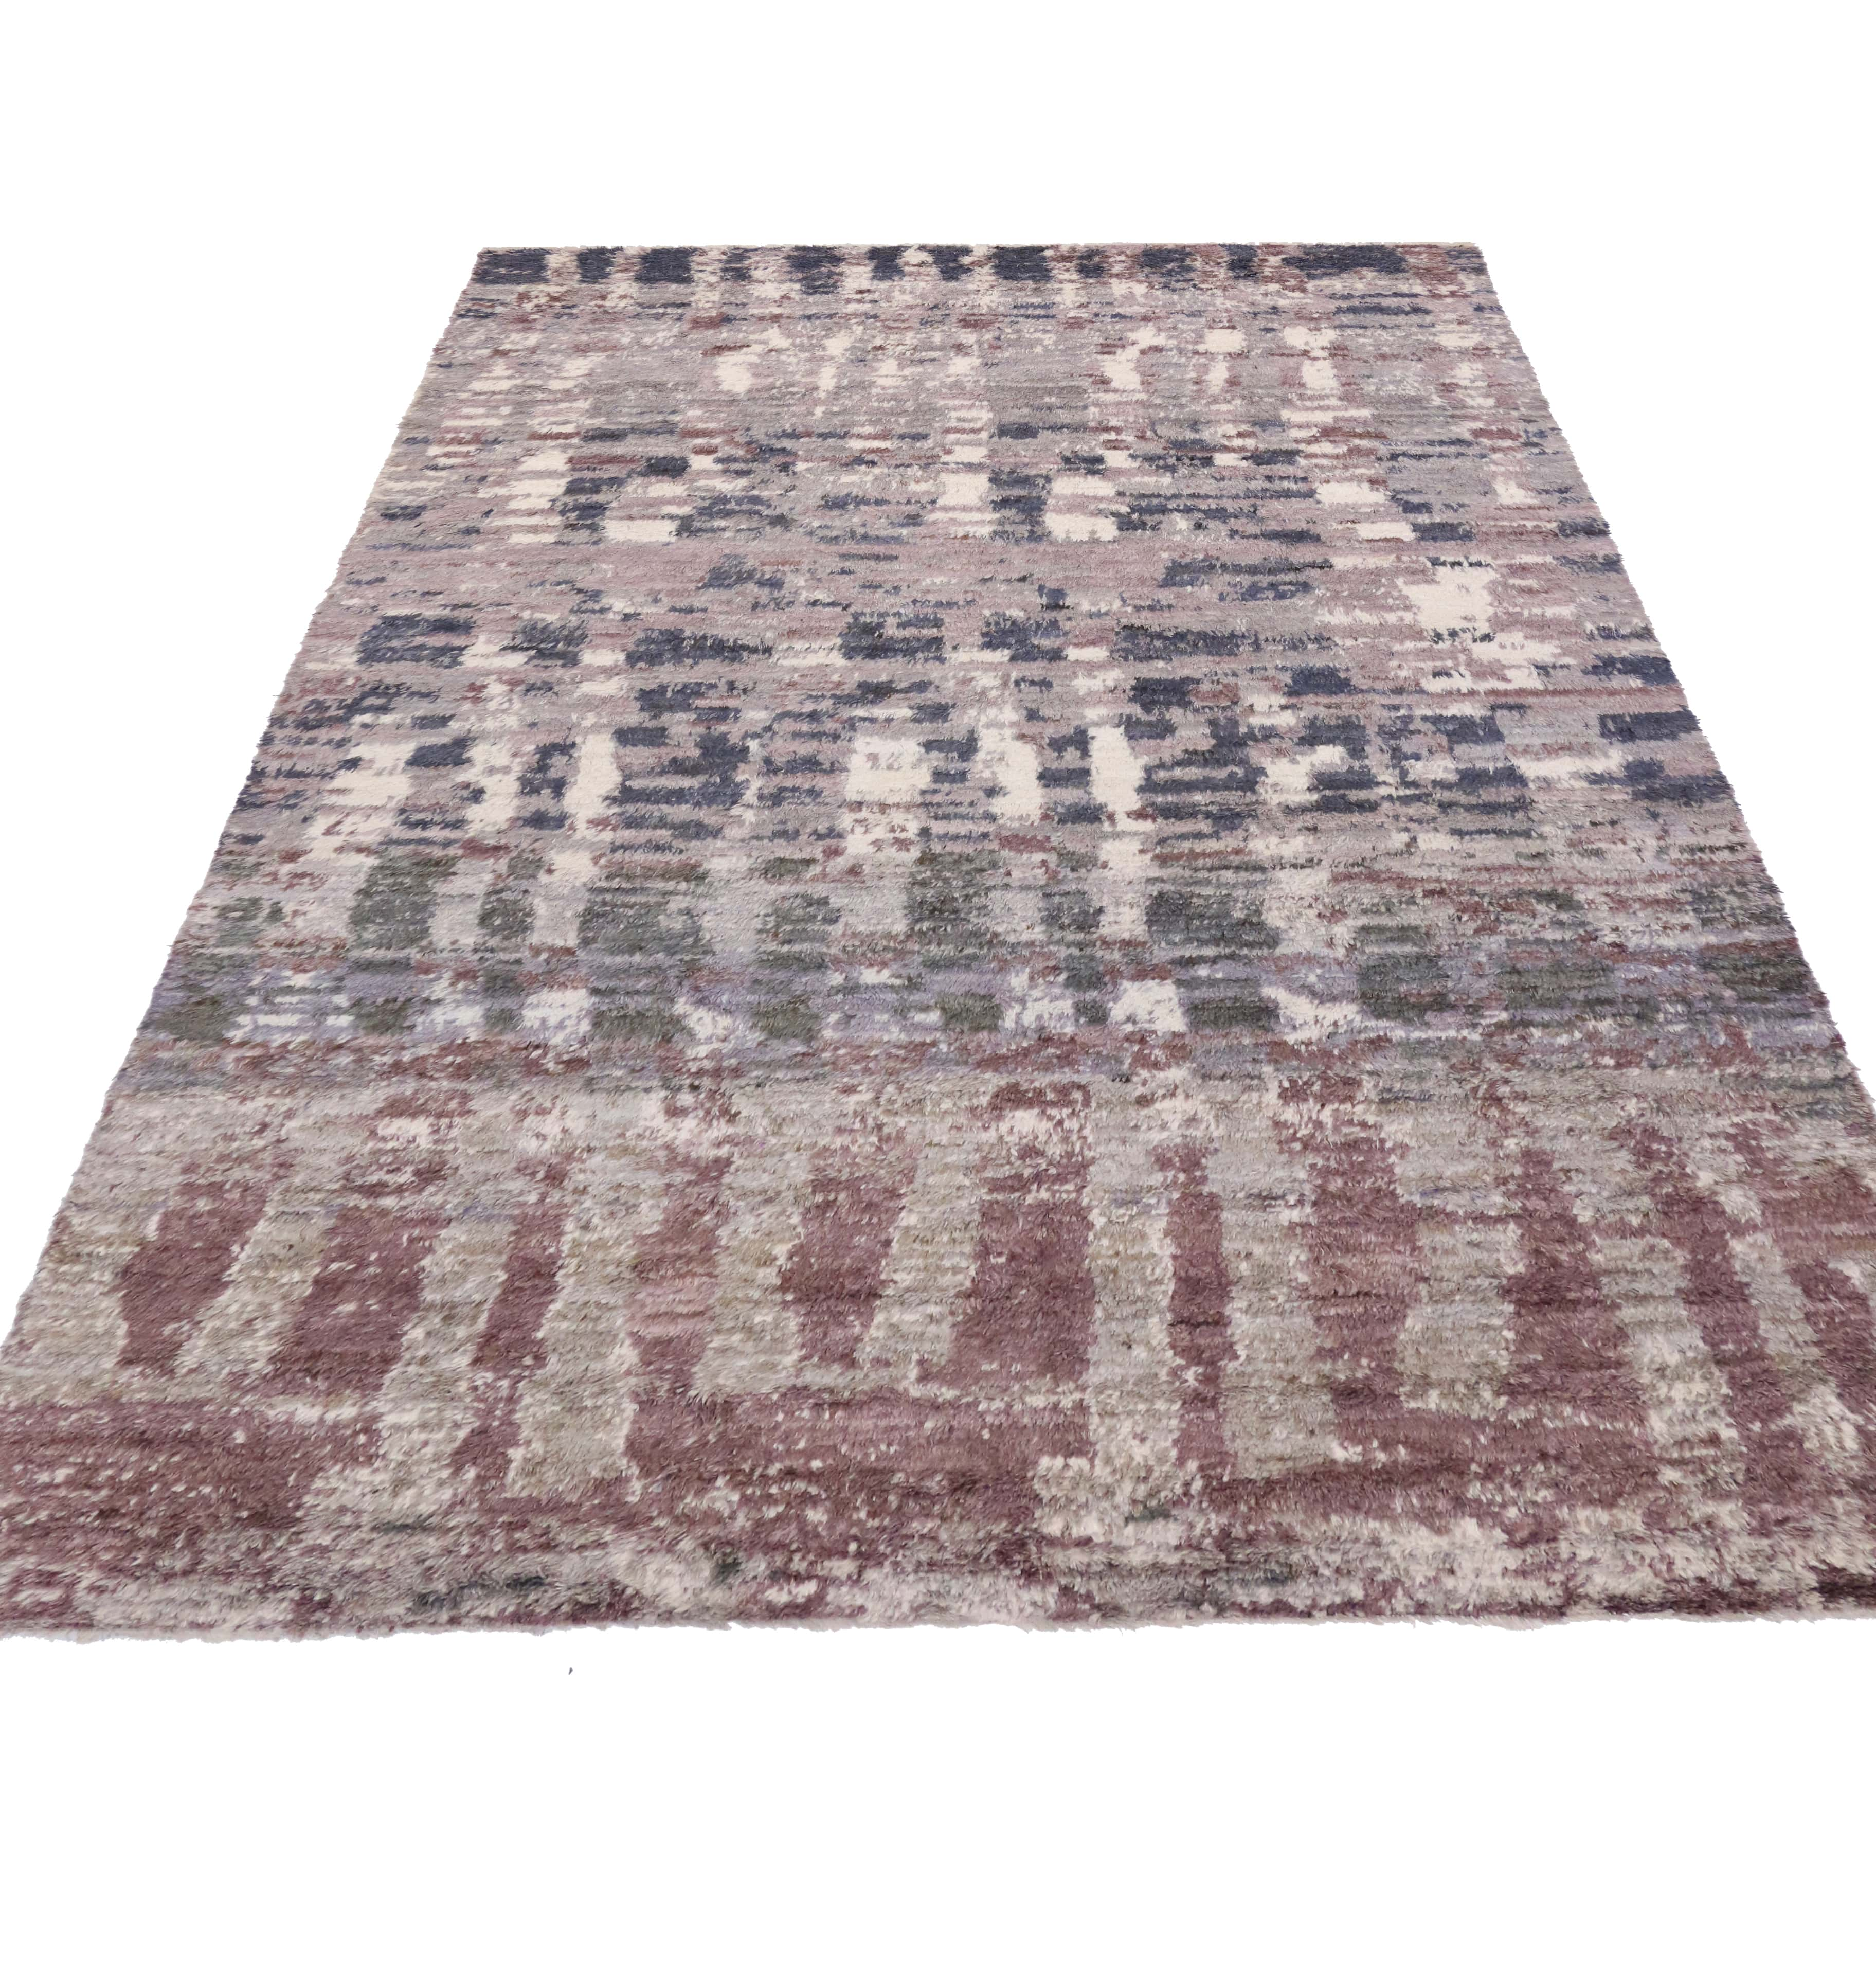 10 X 14 Abstract Moroccan Style Rug 80194